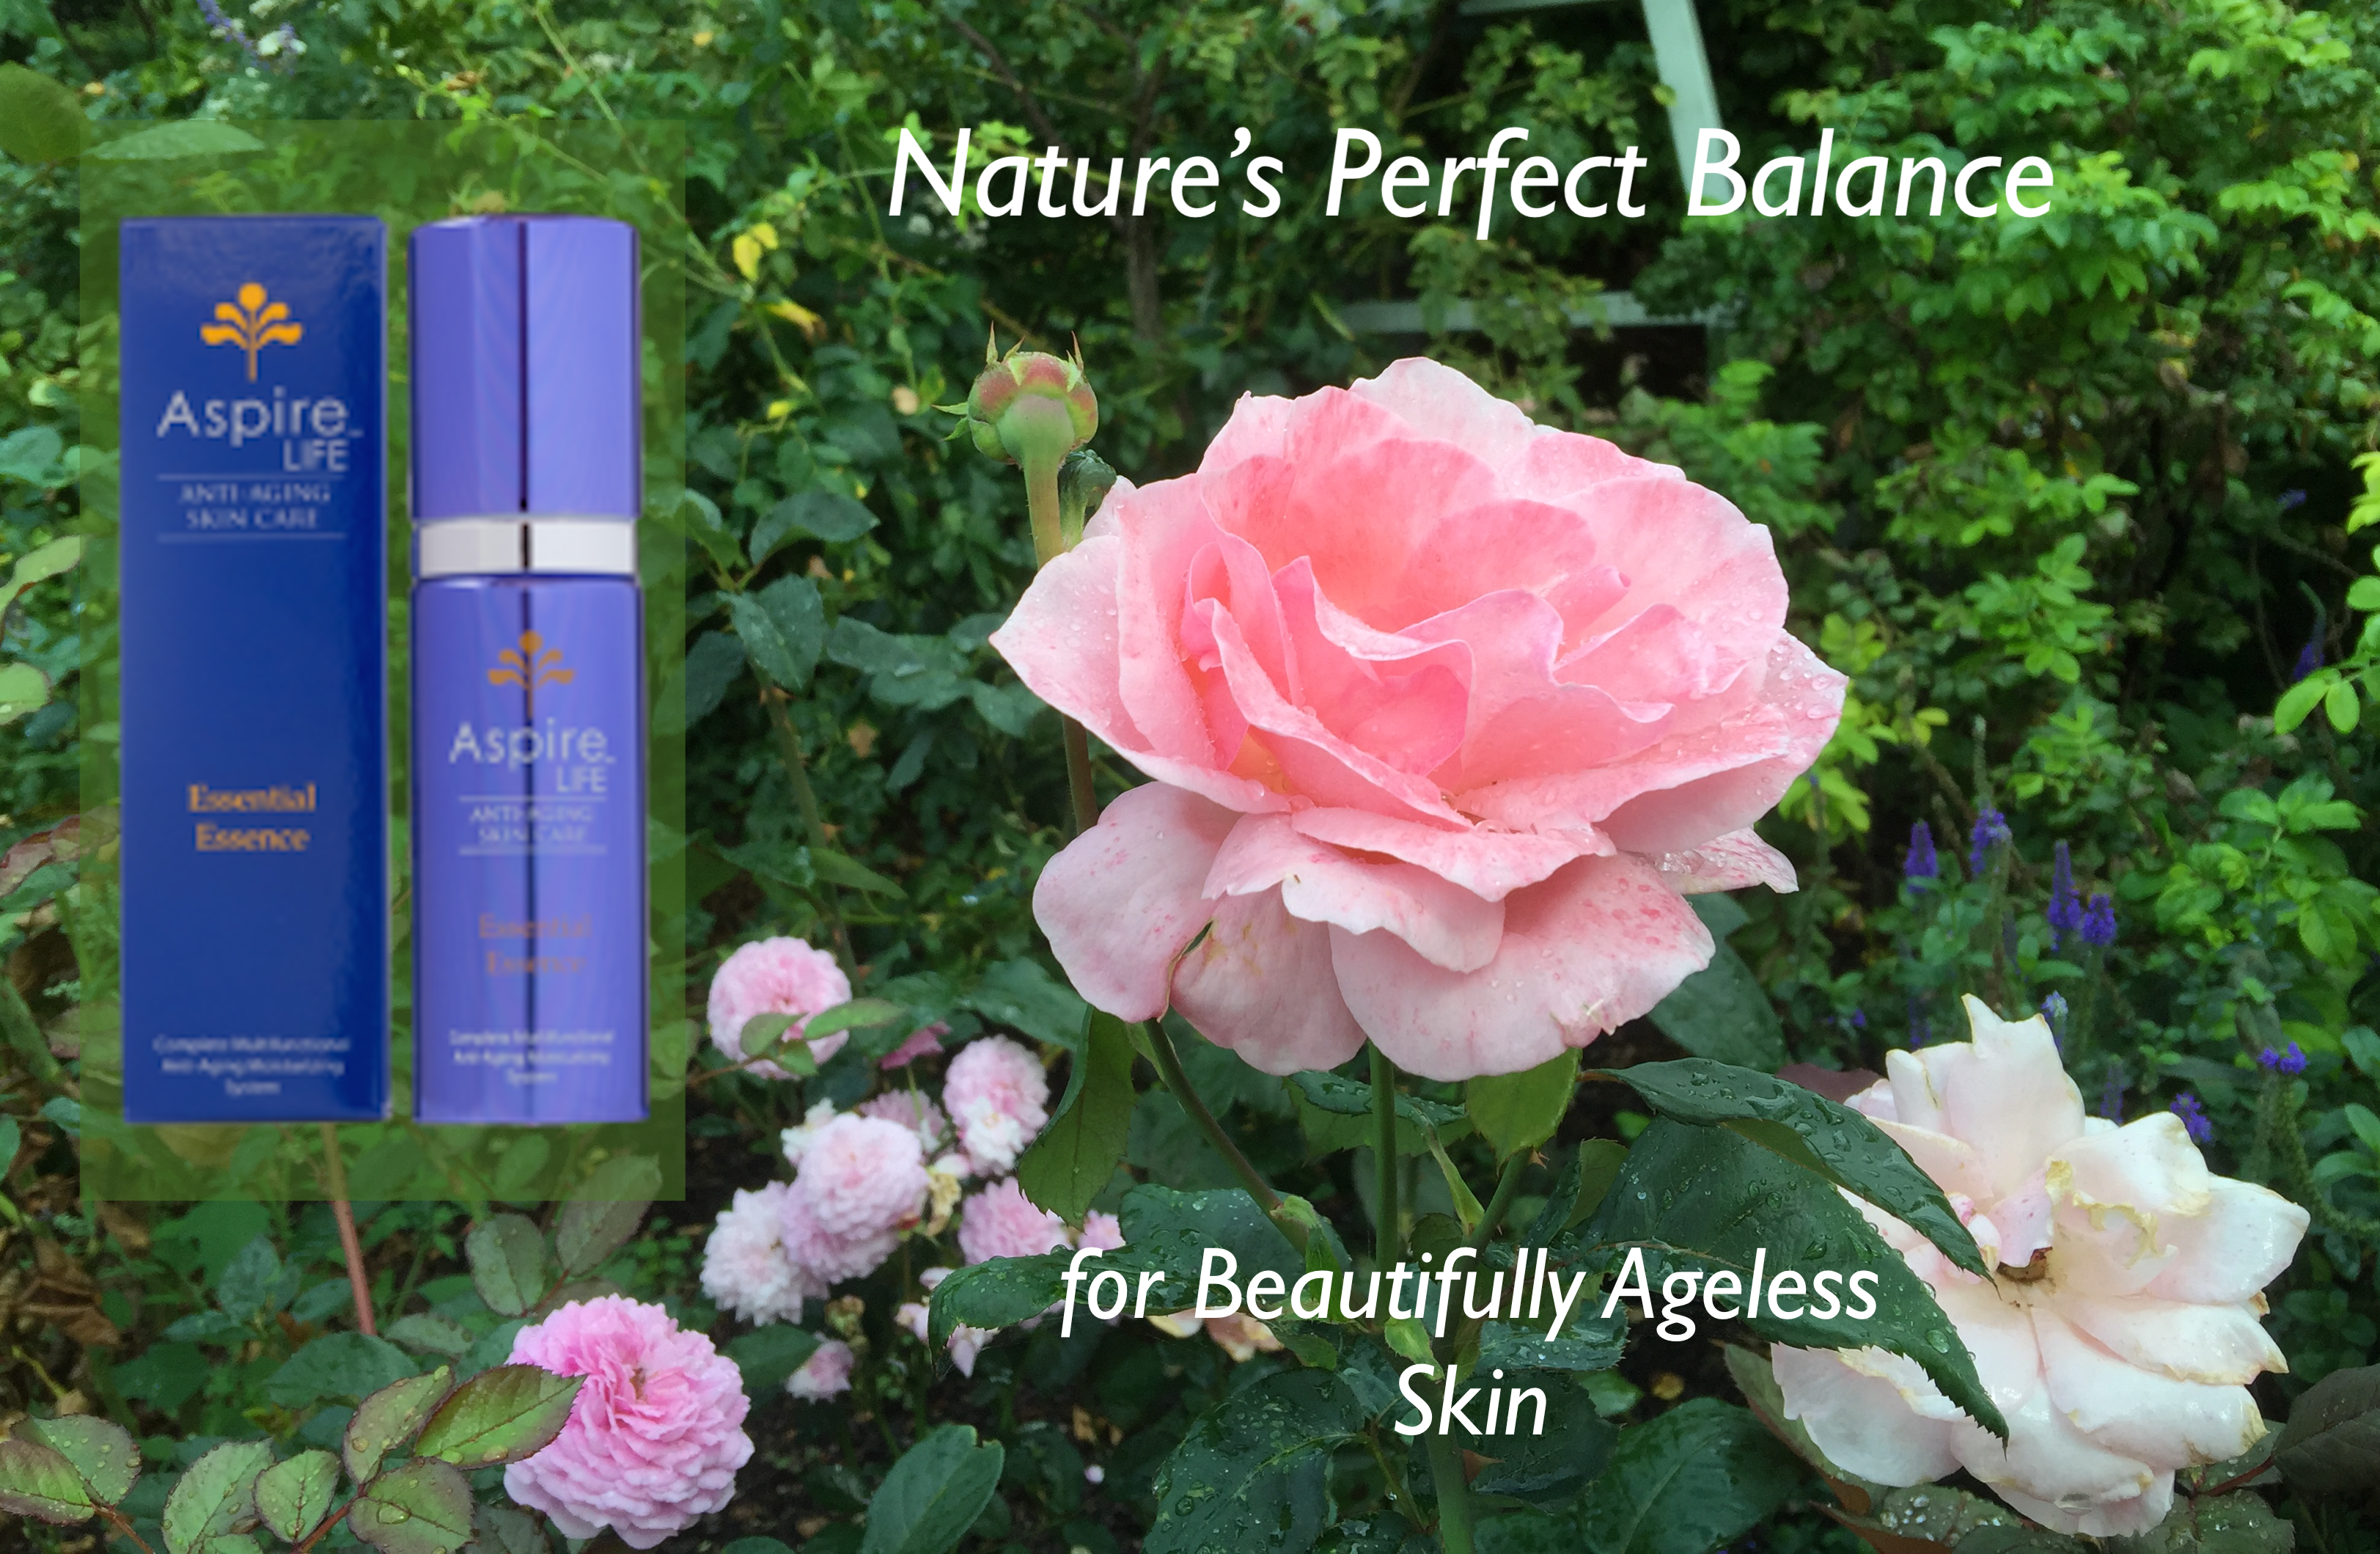 AspireLIFE Essences Beauty Rose AD